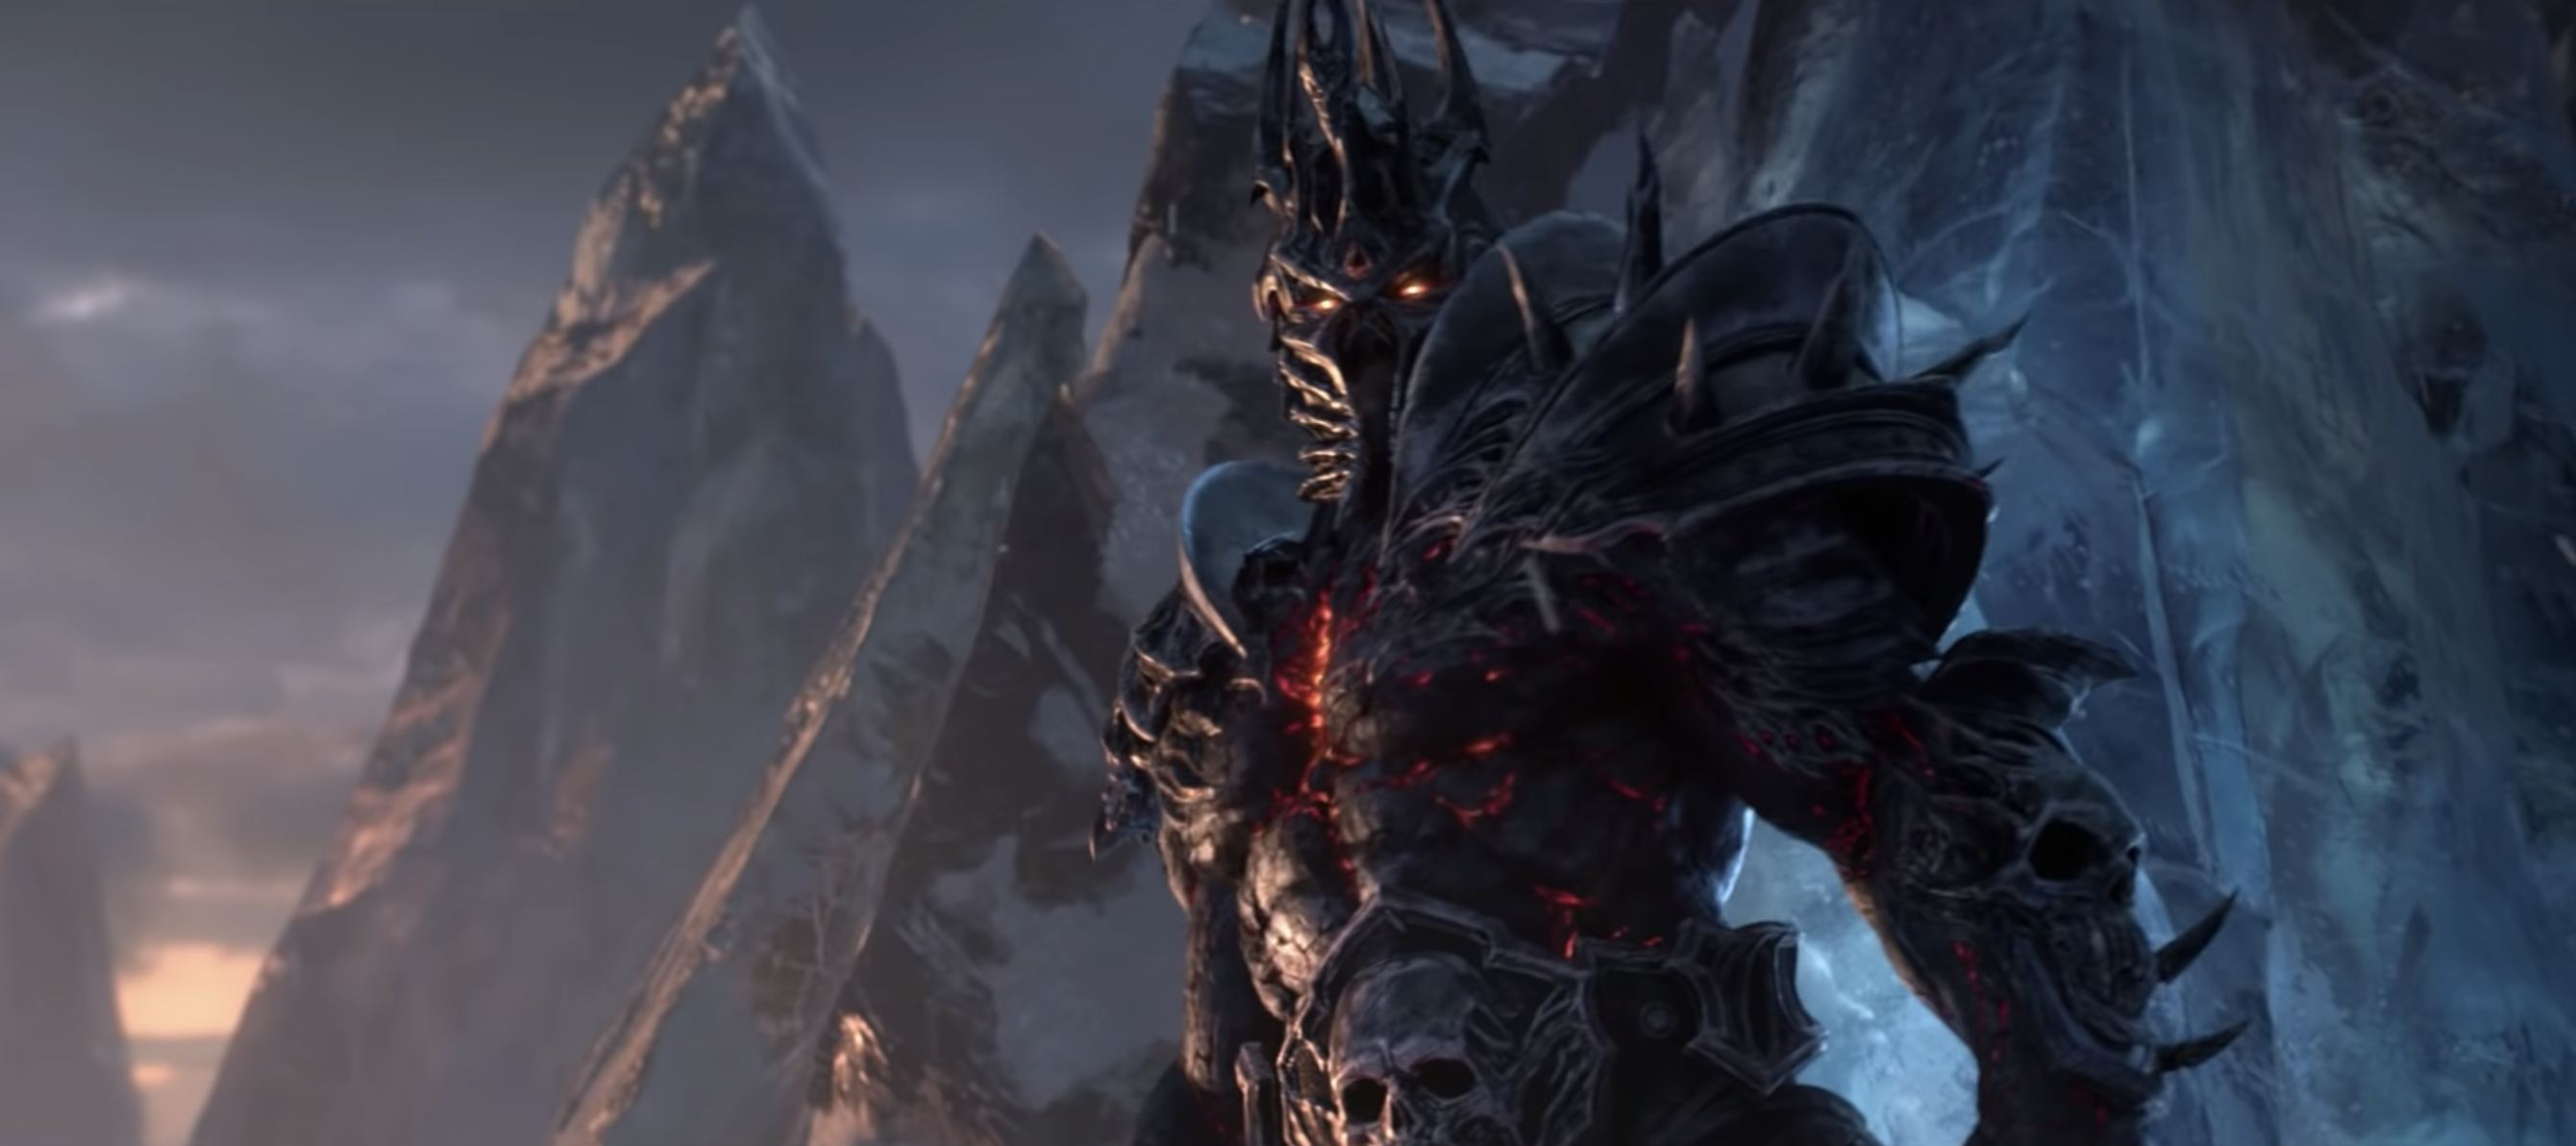 World of Warcraft Shadowlands Trailer and Release Date